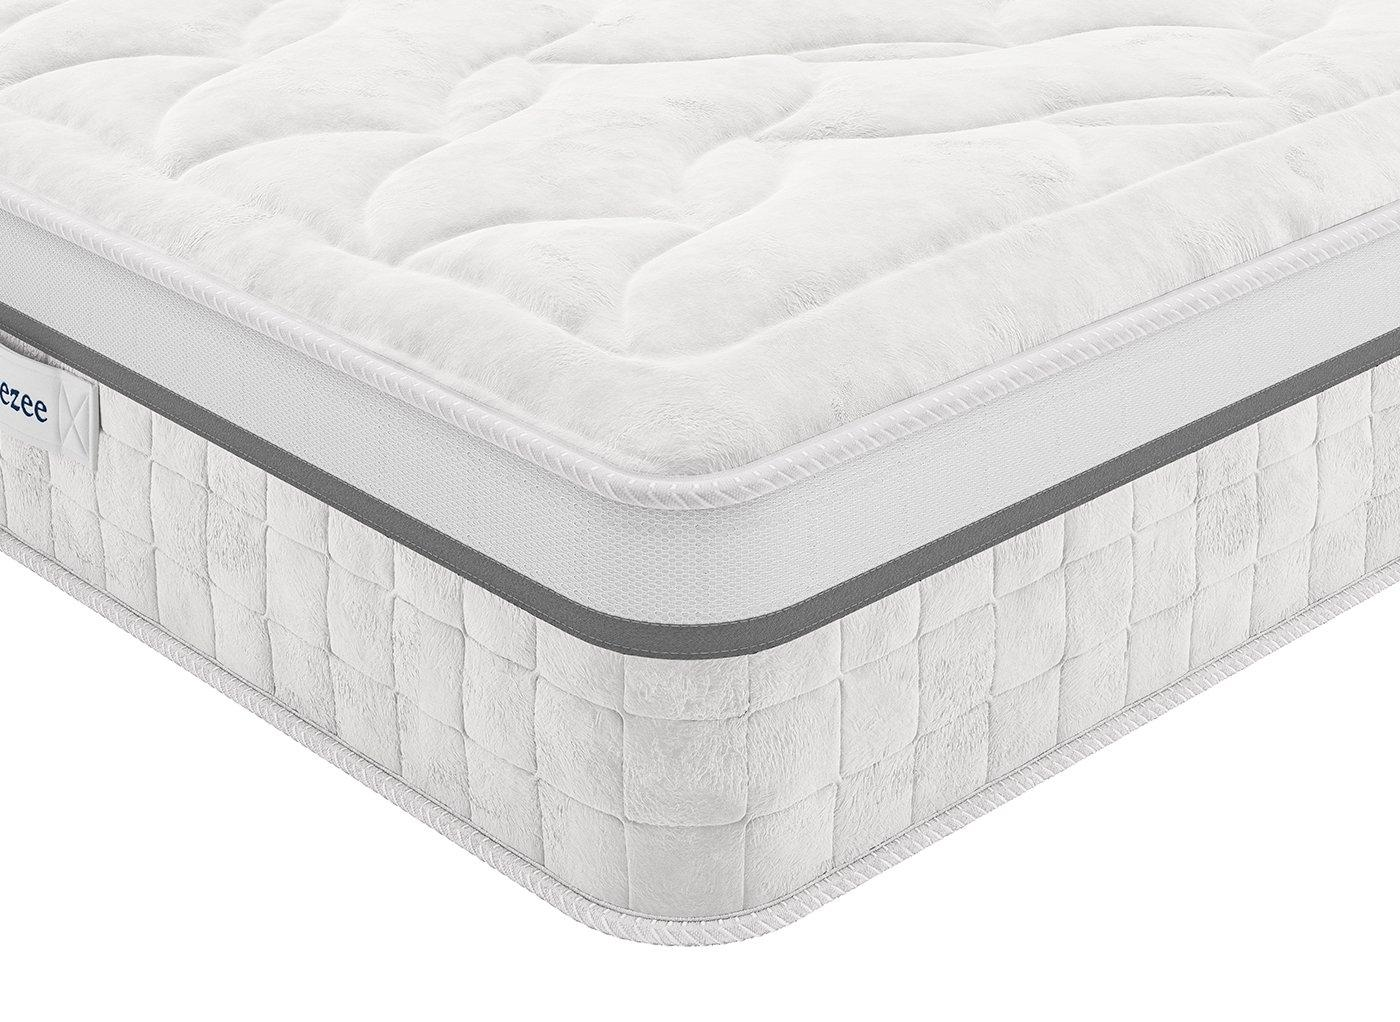 sleepeezee-paddington-pocket-sprung-mattress